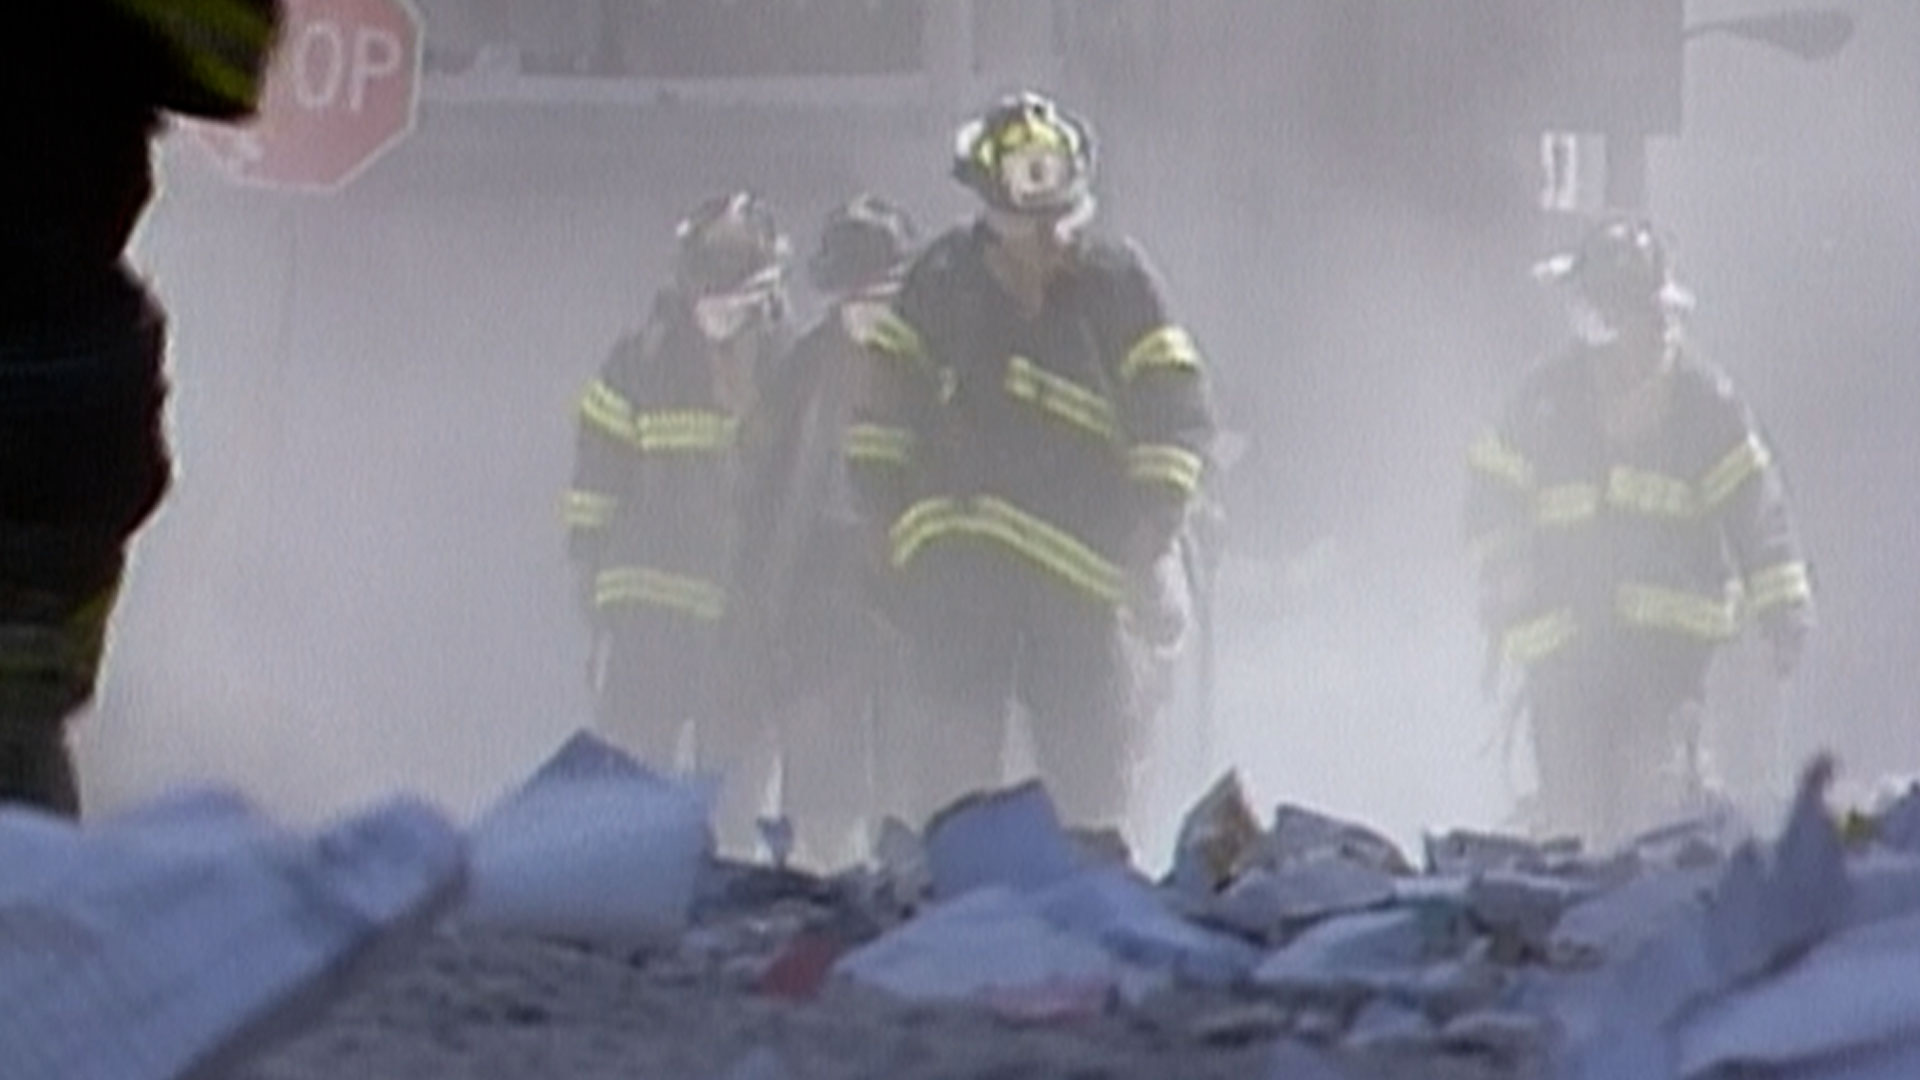 9/11: Reflections on Leading New York City